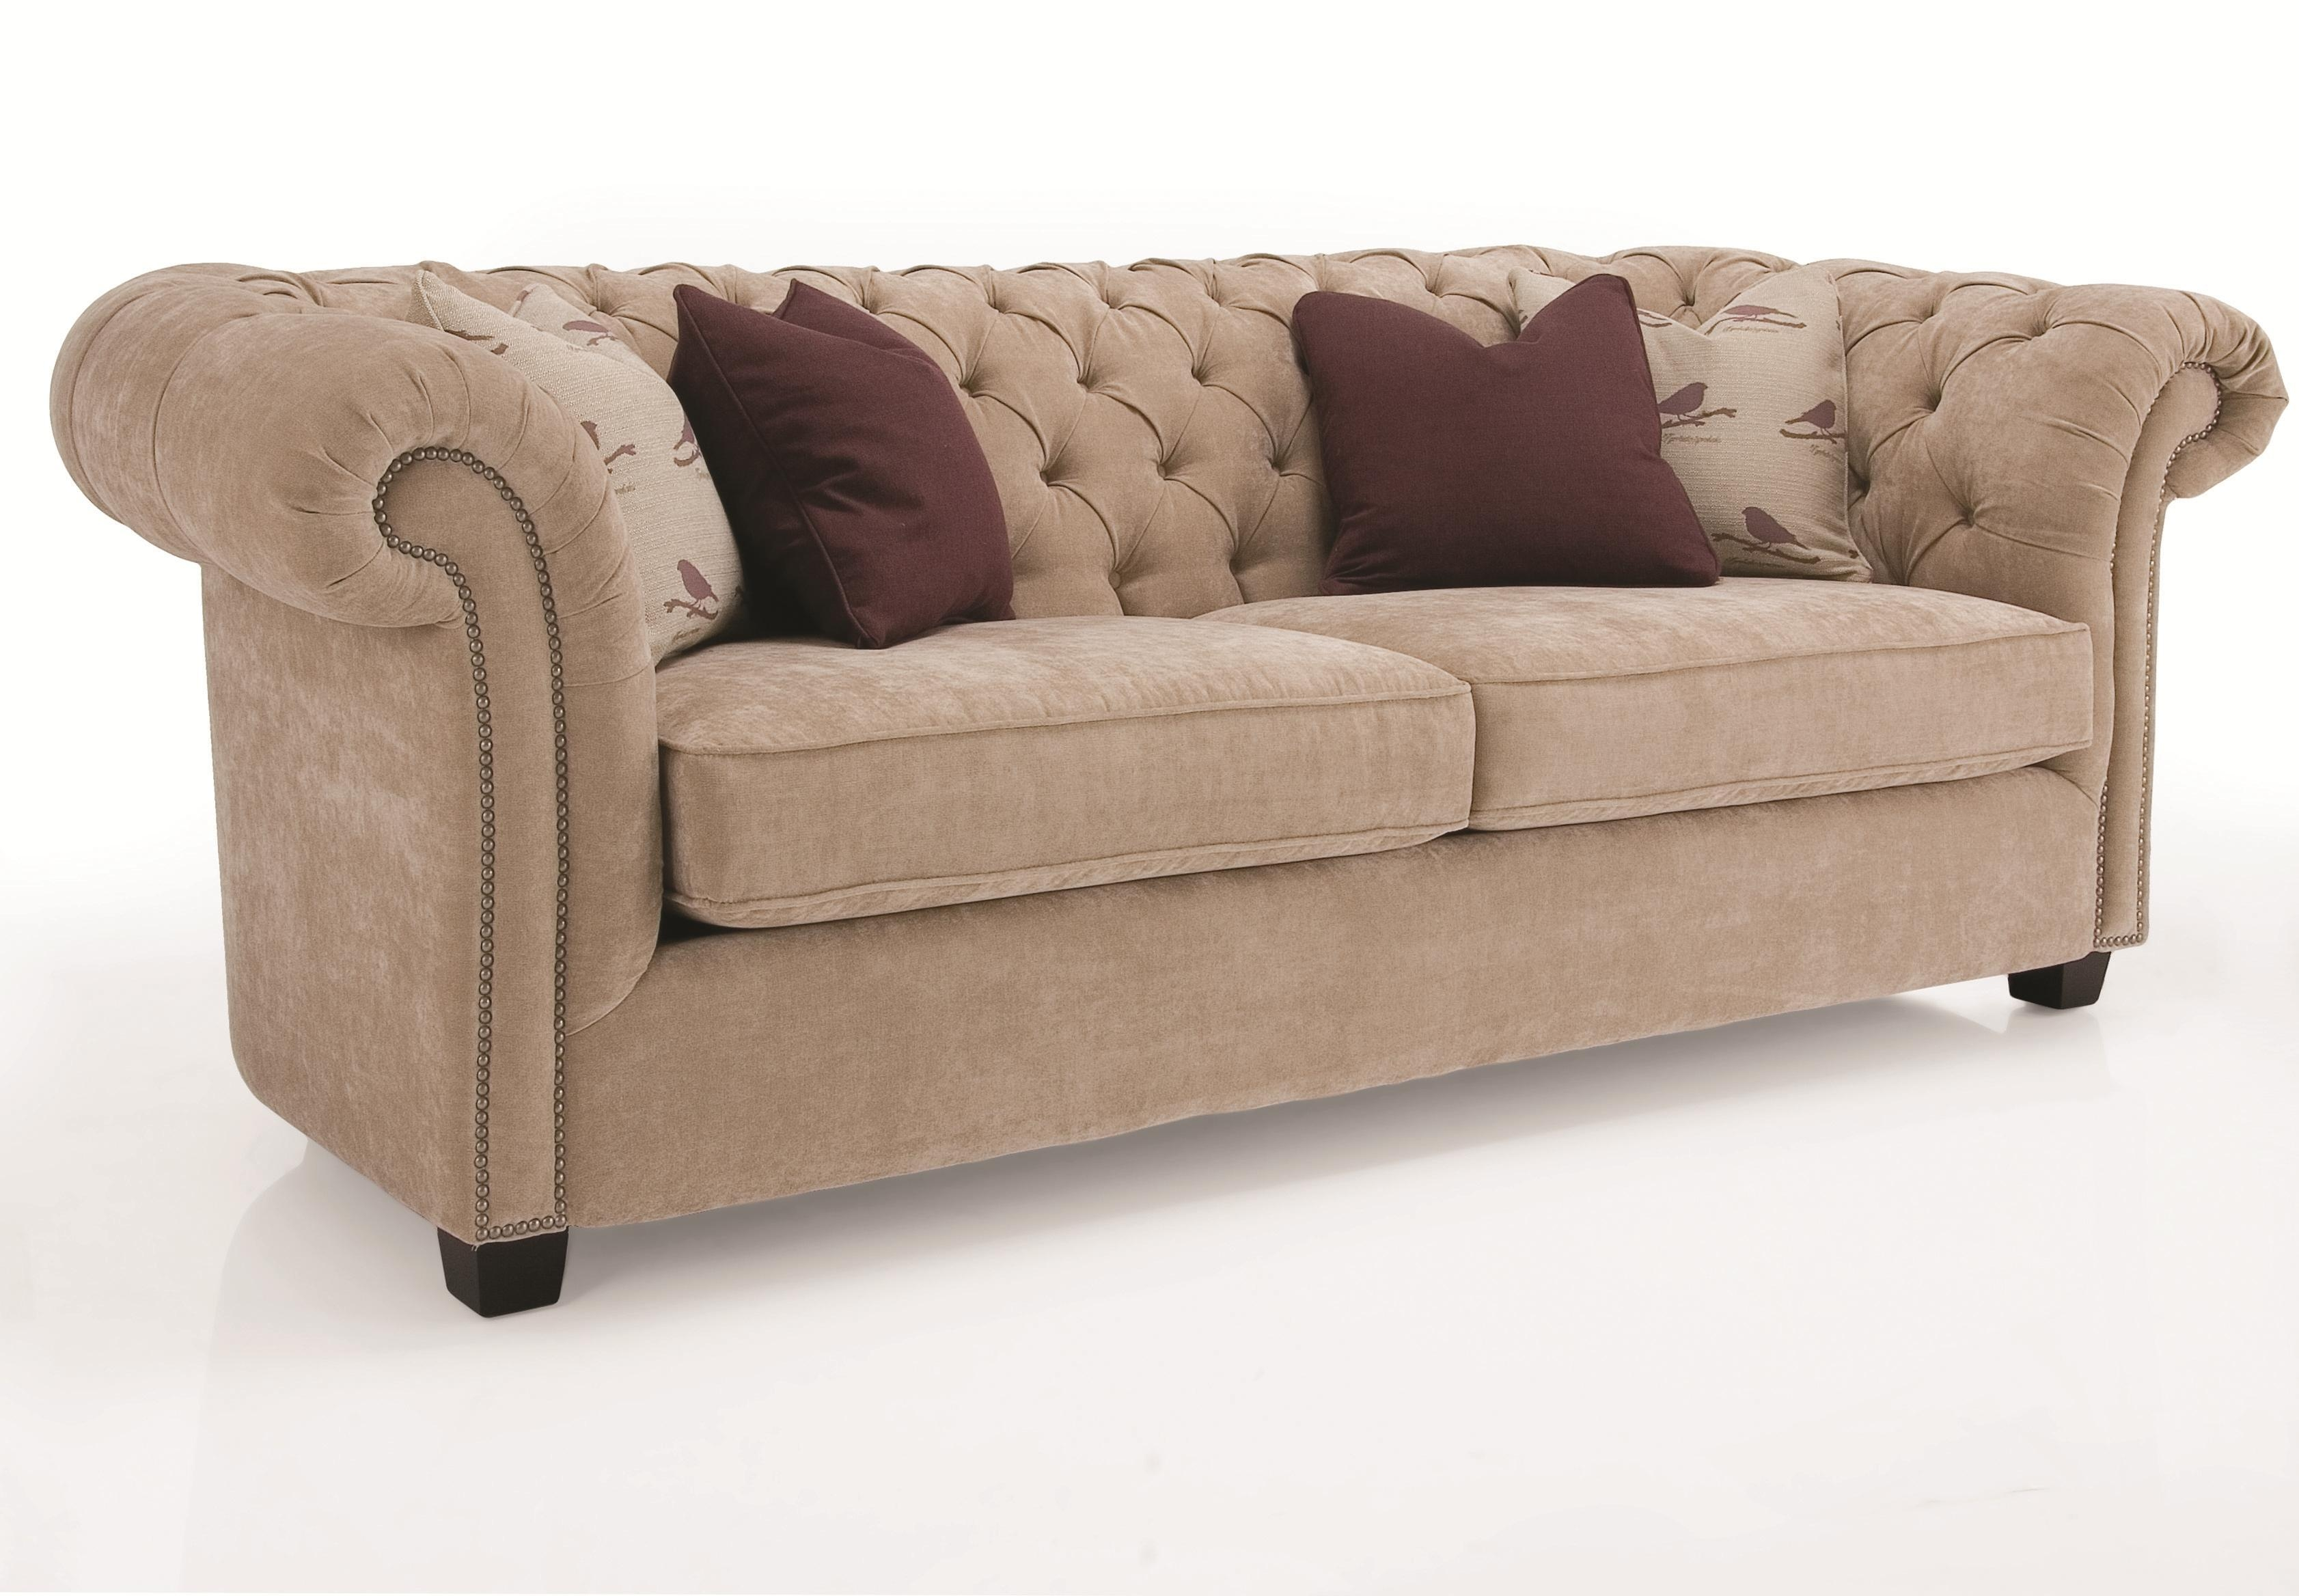 Churchill Sofa – Hereo Sofa Pertaining To Churchill Sofas (View 16 of 20)